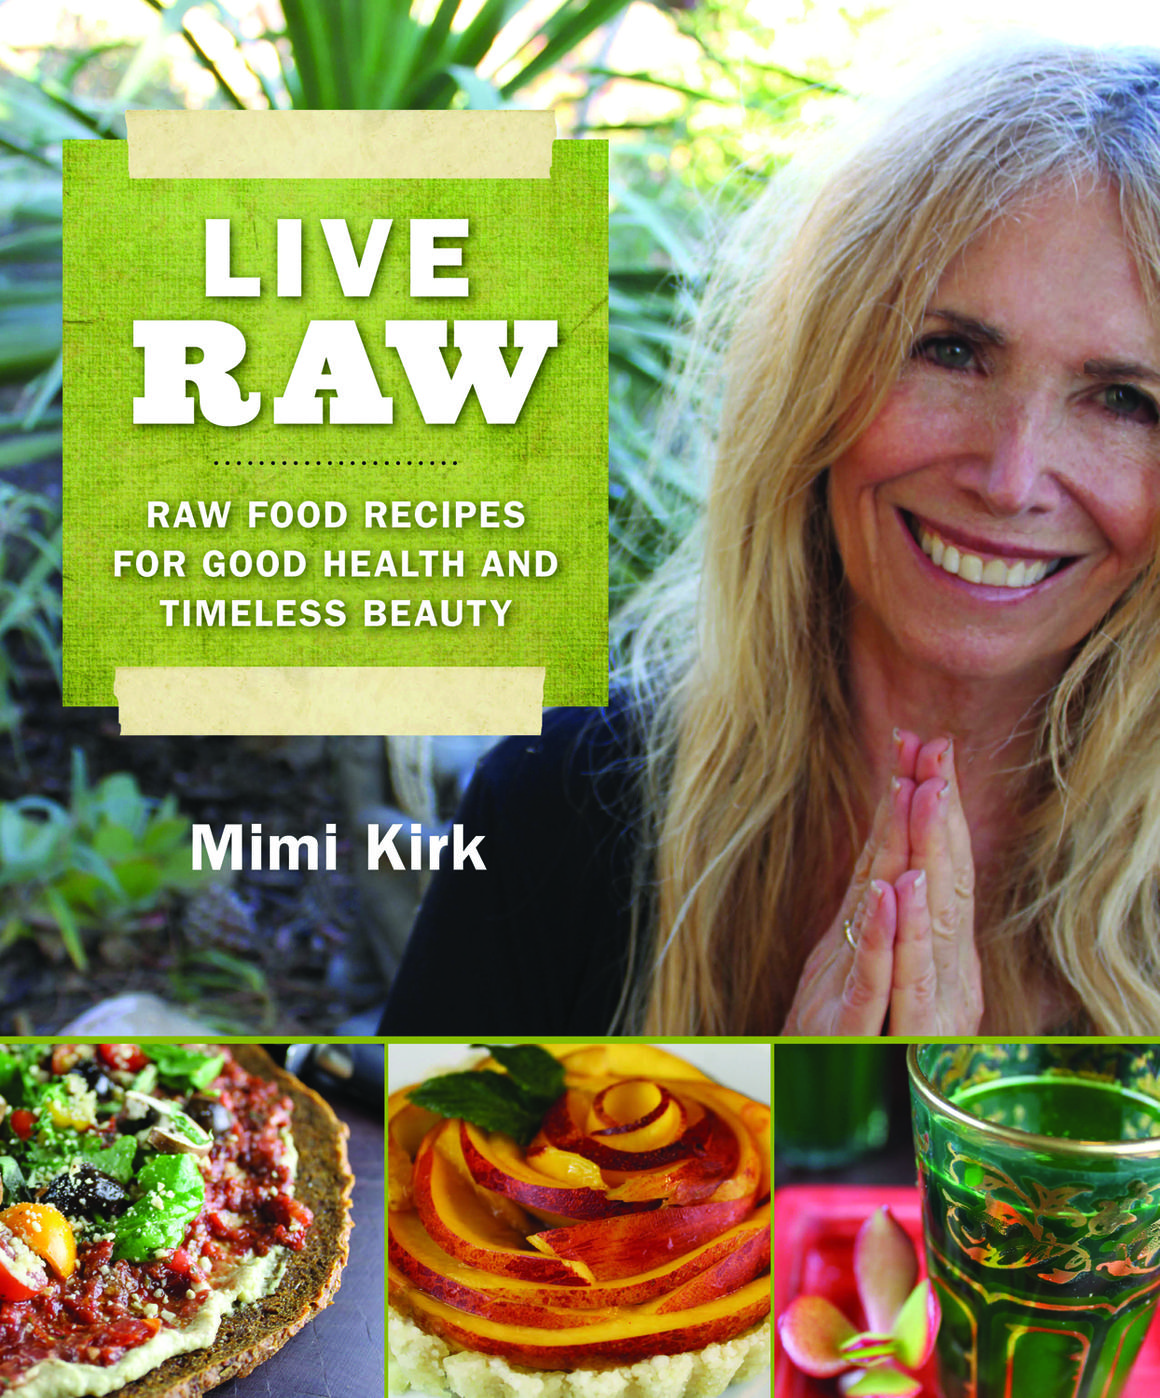 One radio network mimi kirk live raw raw food recipes for good one radio network mimi kirk live raw raw food recipes for good health and timeless beauty forumfinder Images